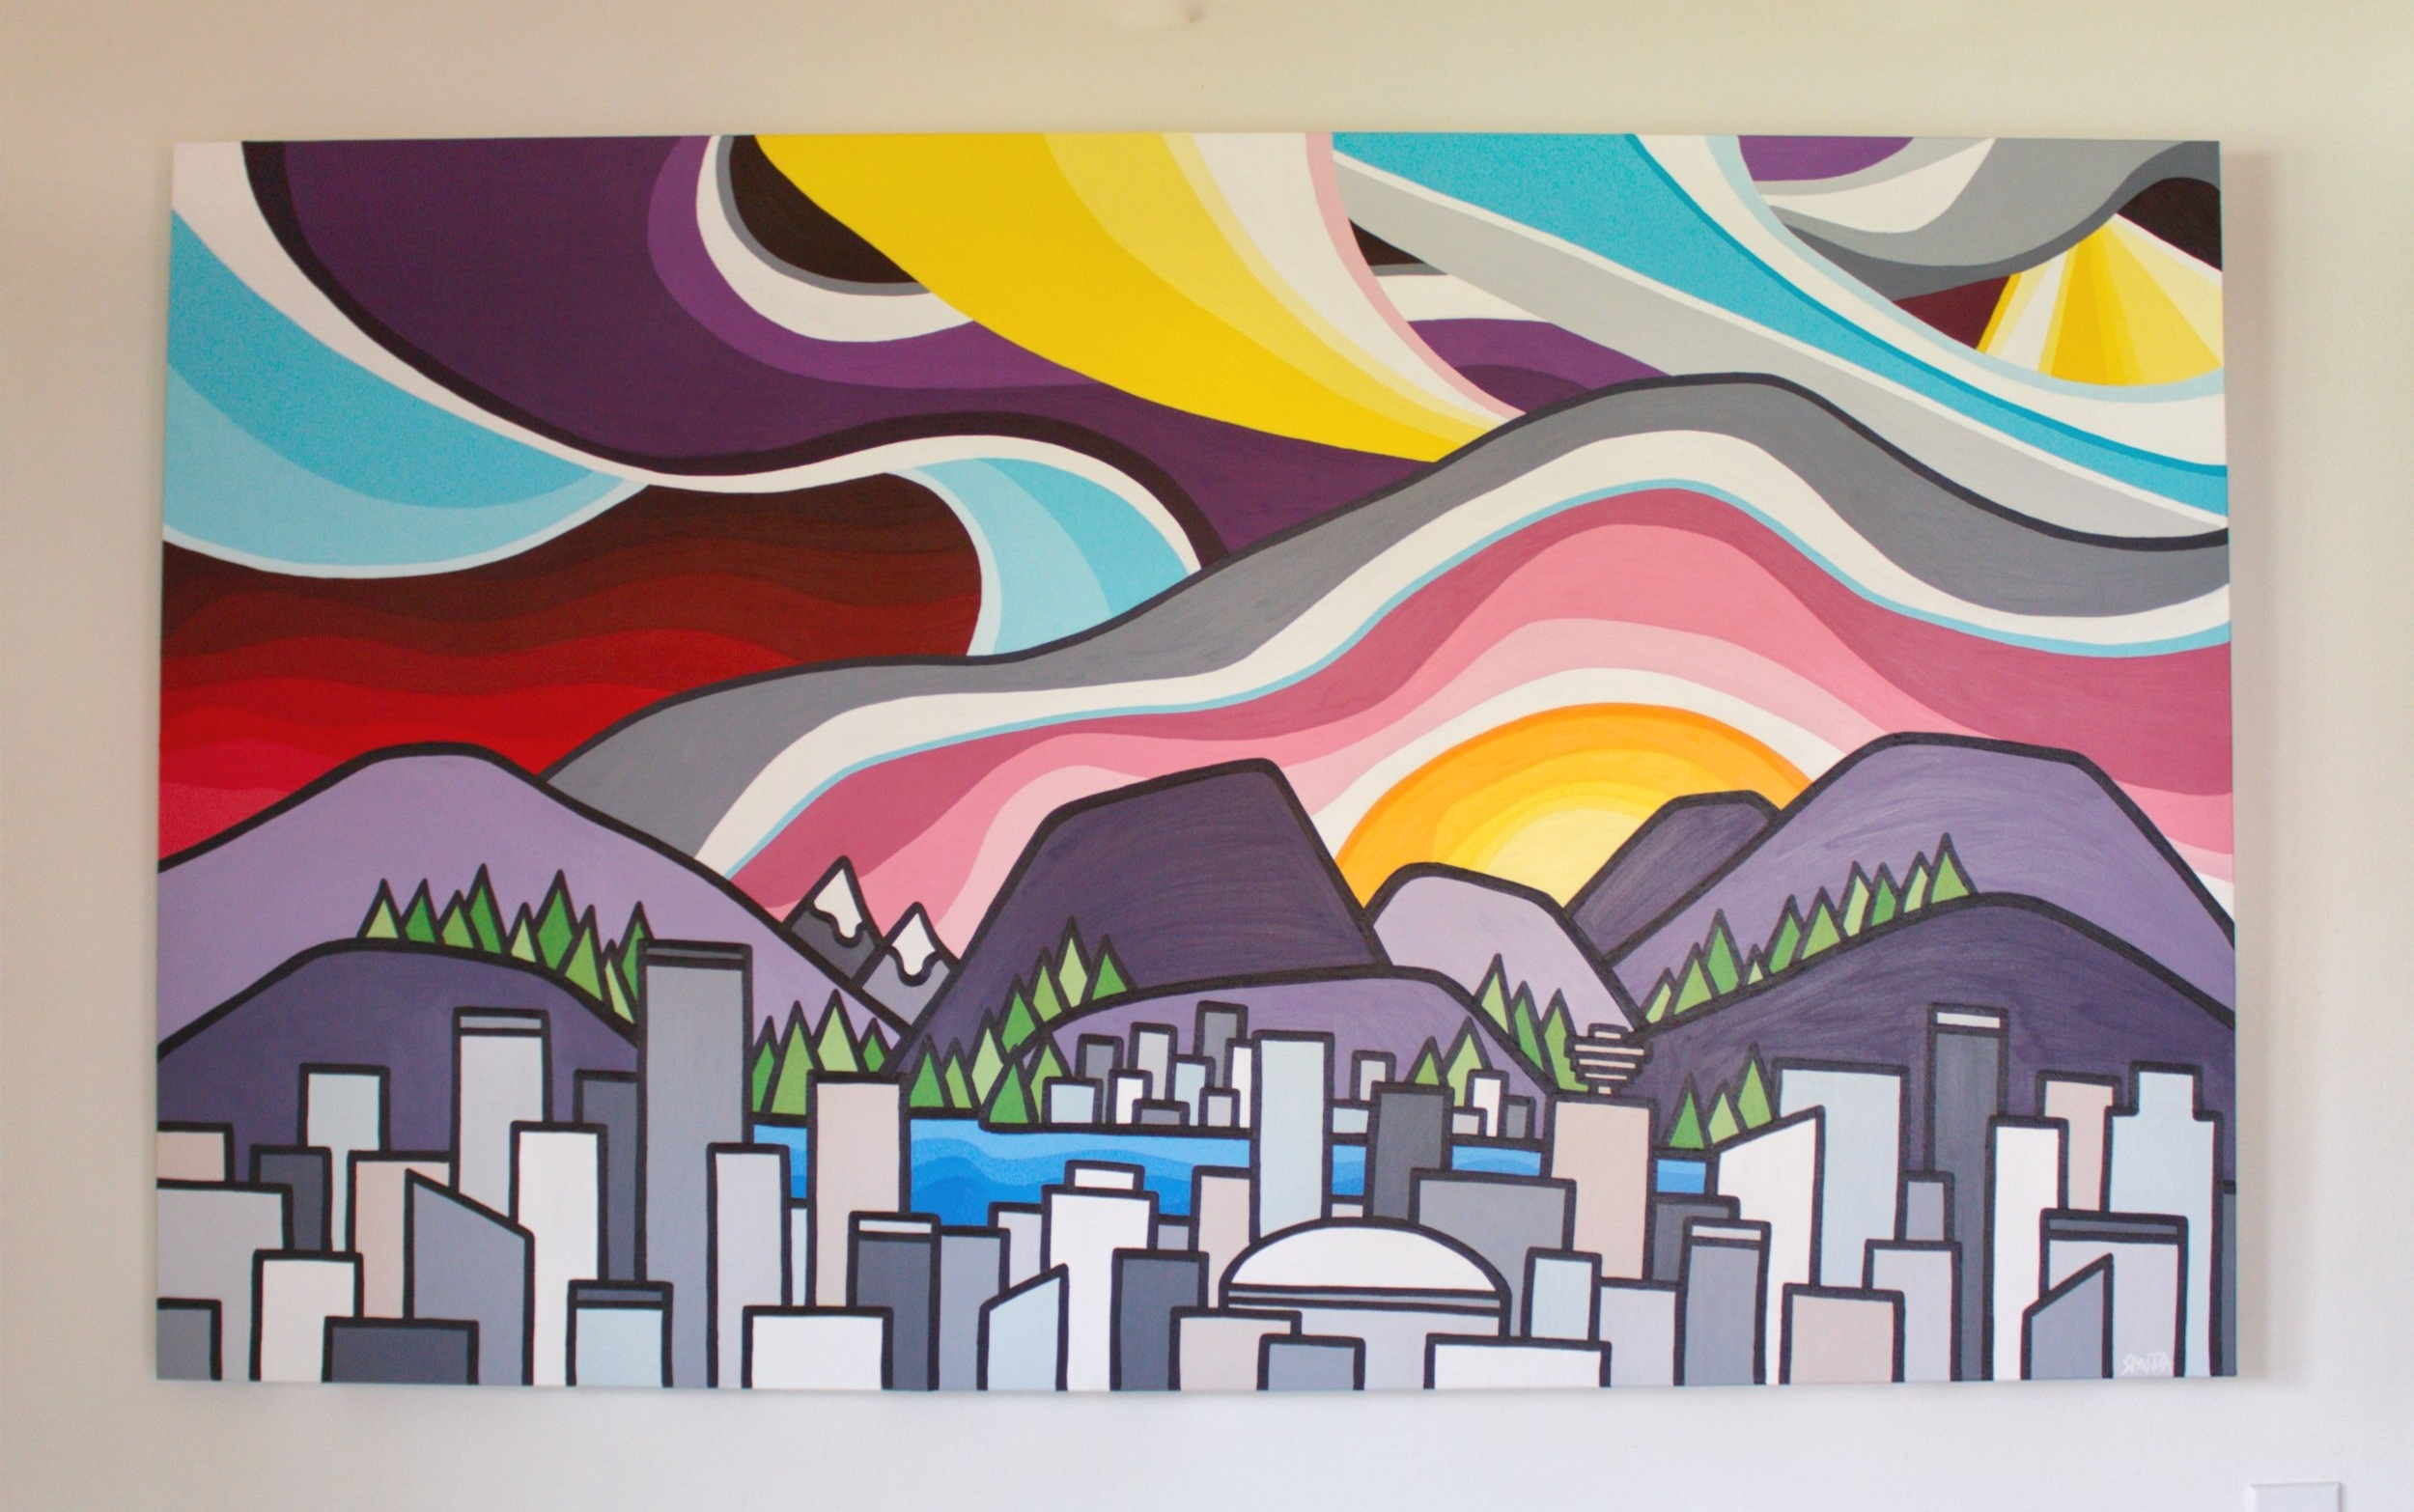 "The City - Size: 36"" x 60"" acrylic on canvasPrice: SOLD"